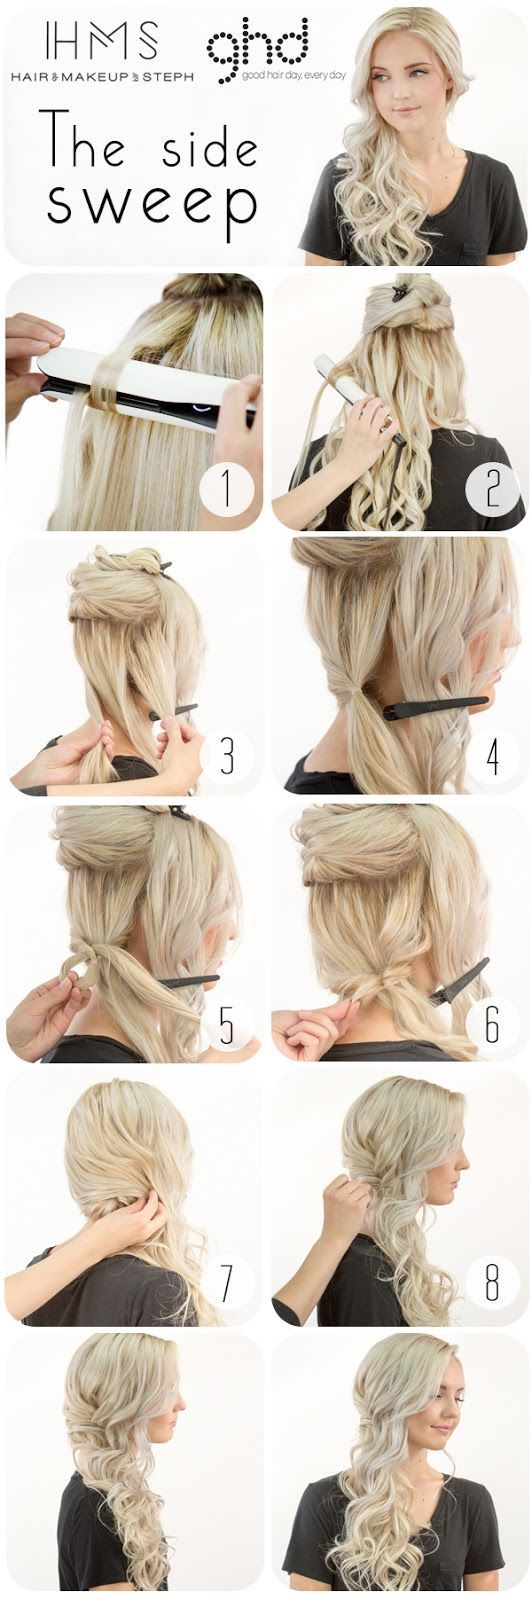 best 25+ hair tutorials ideas on pinterest | braid hair tutorials